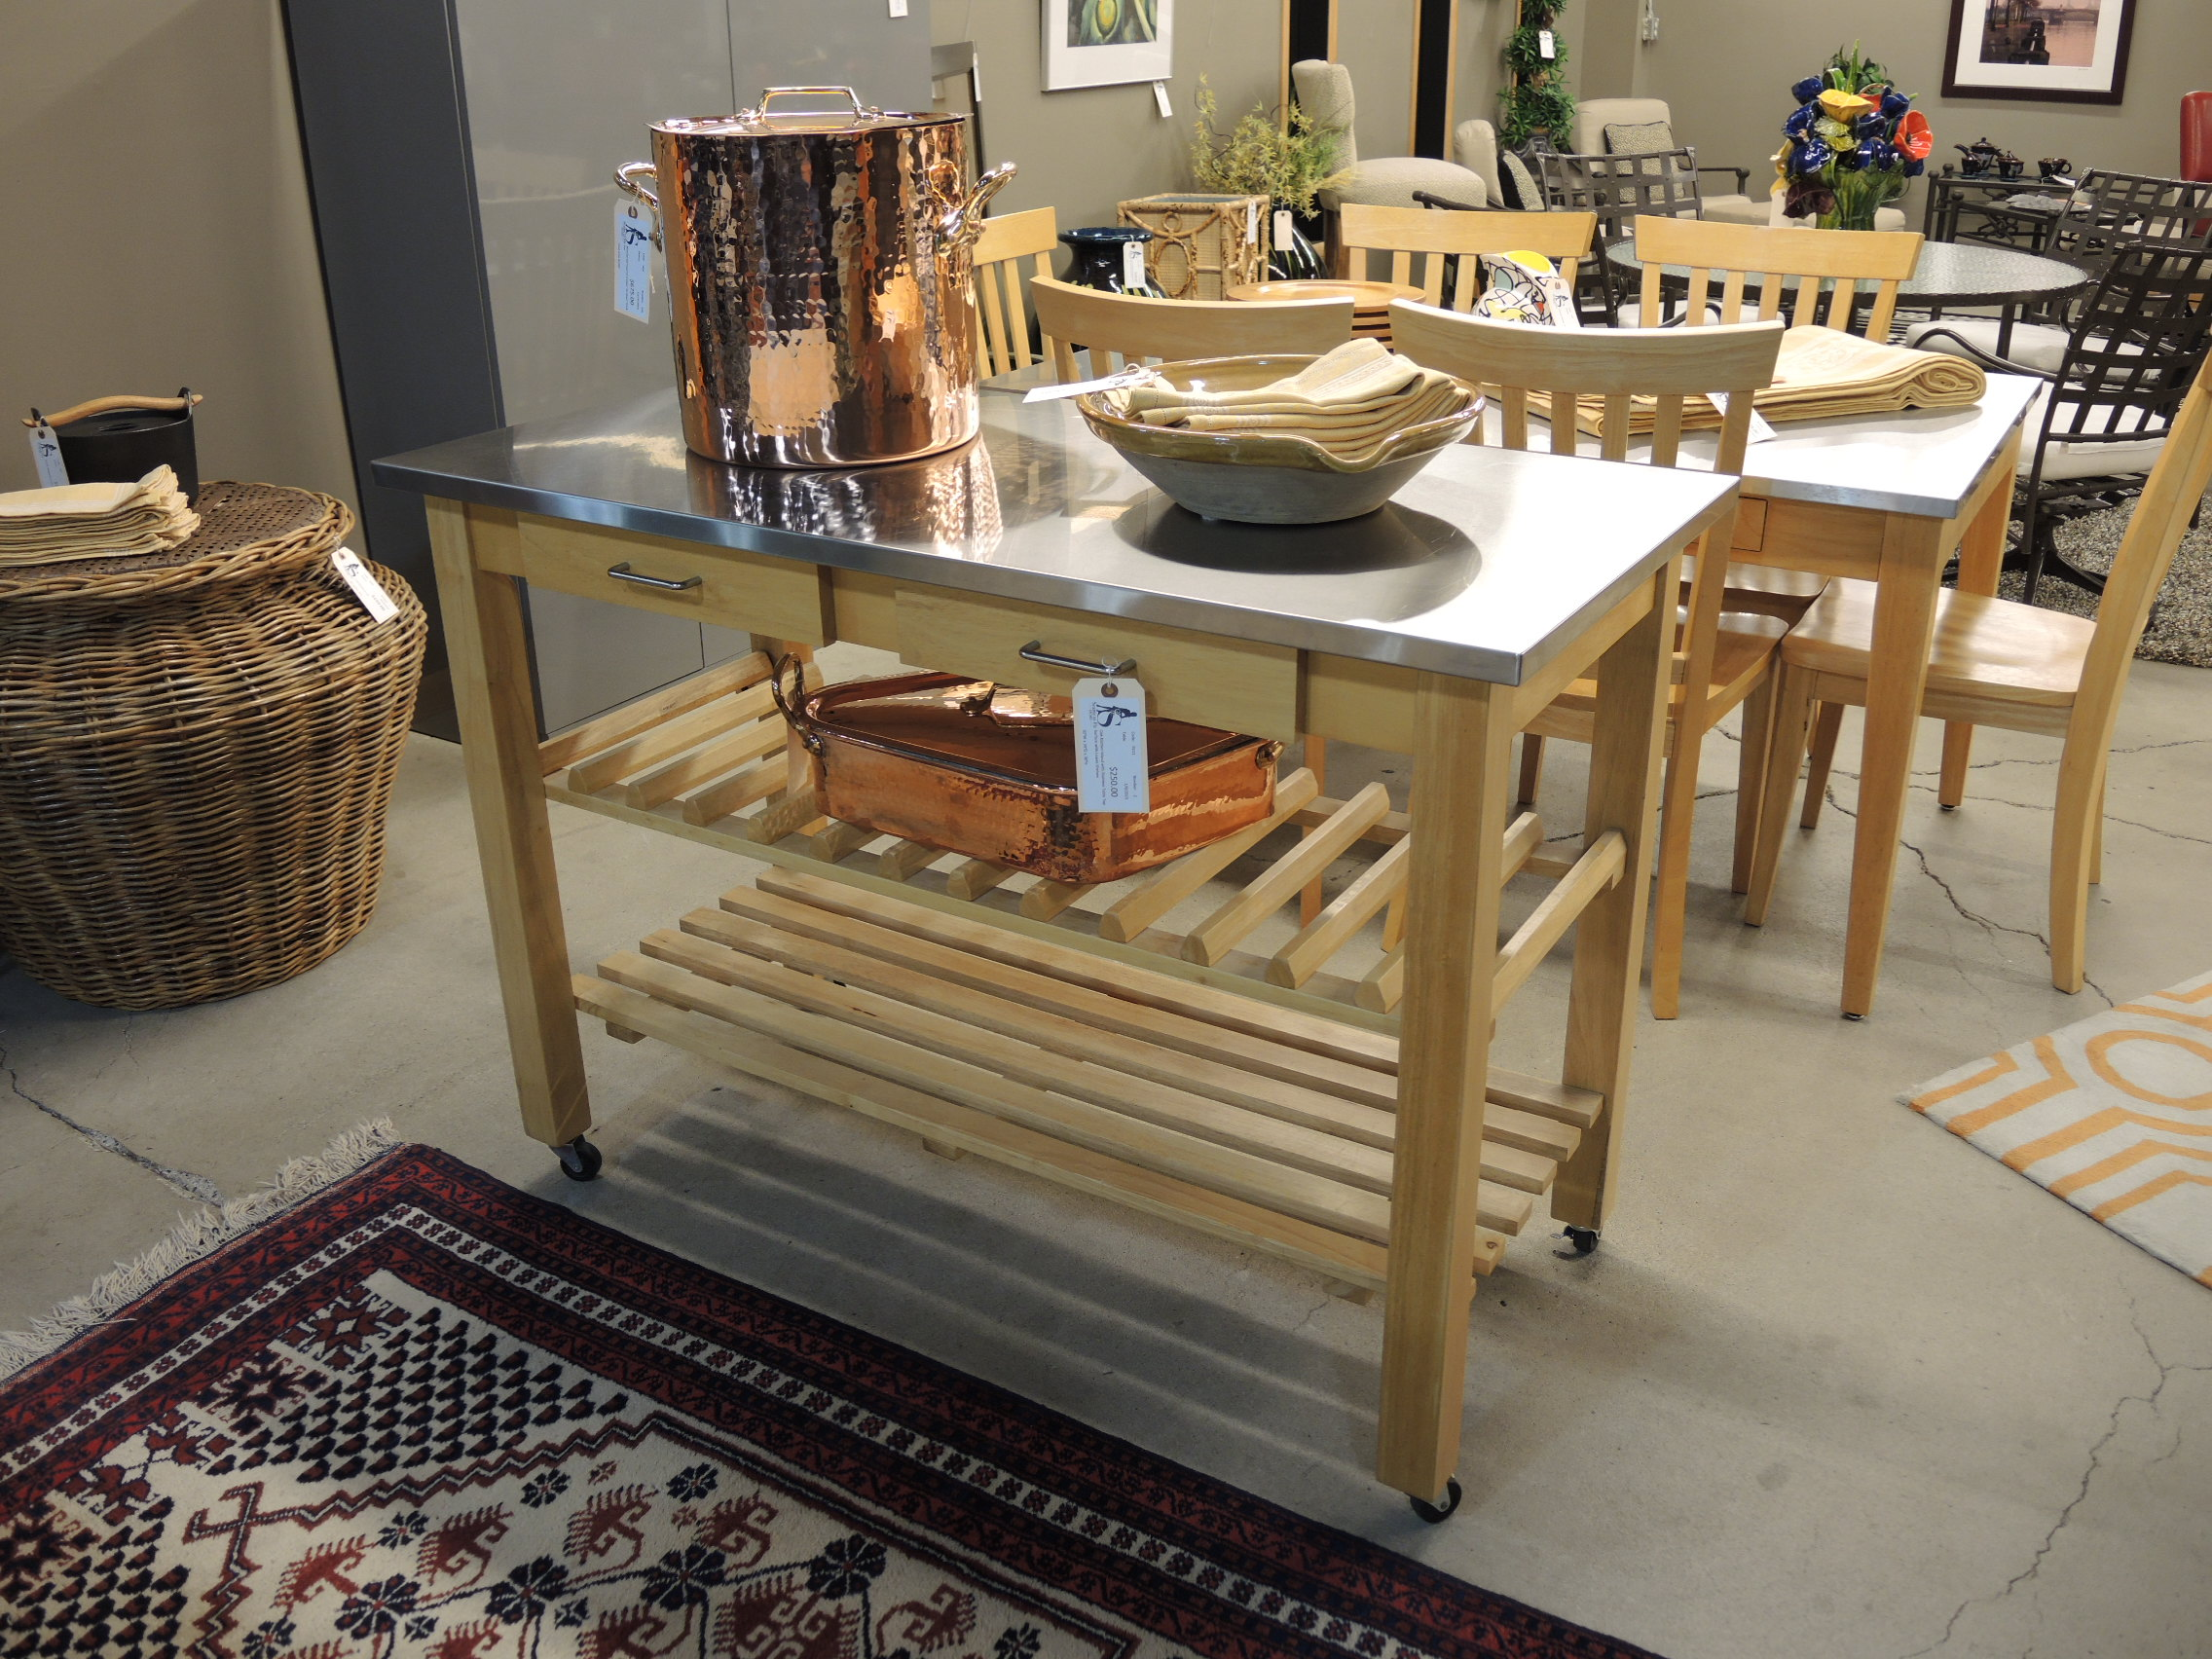 Kitchen Island Seams To Fit Home